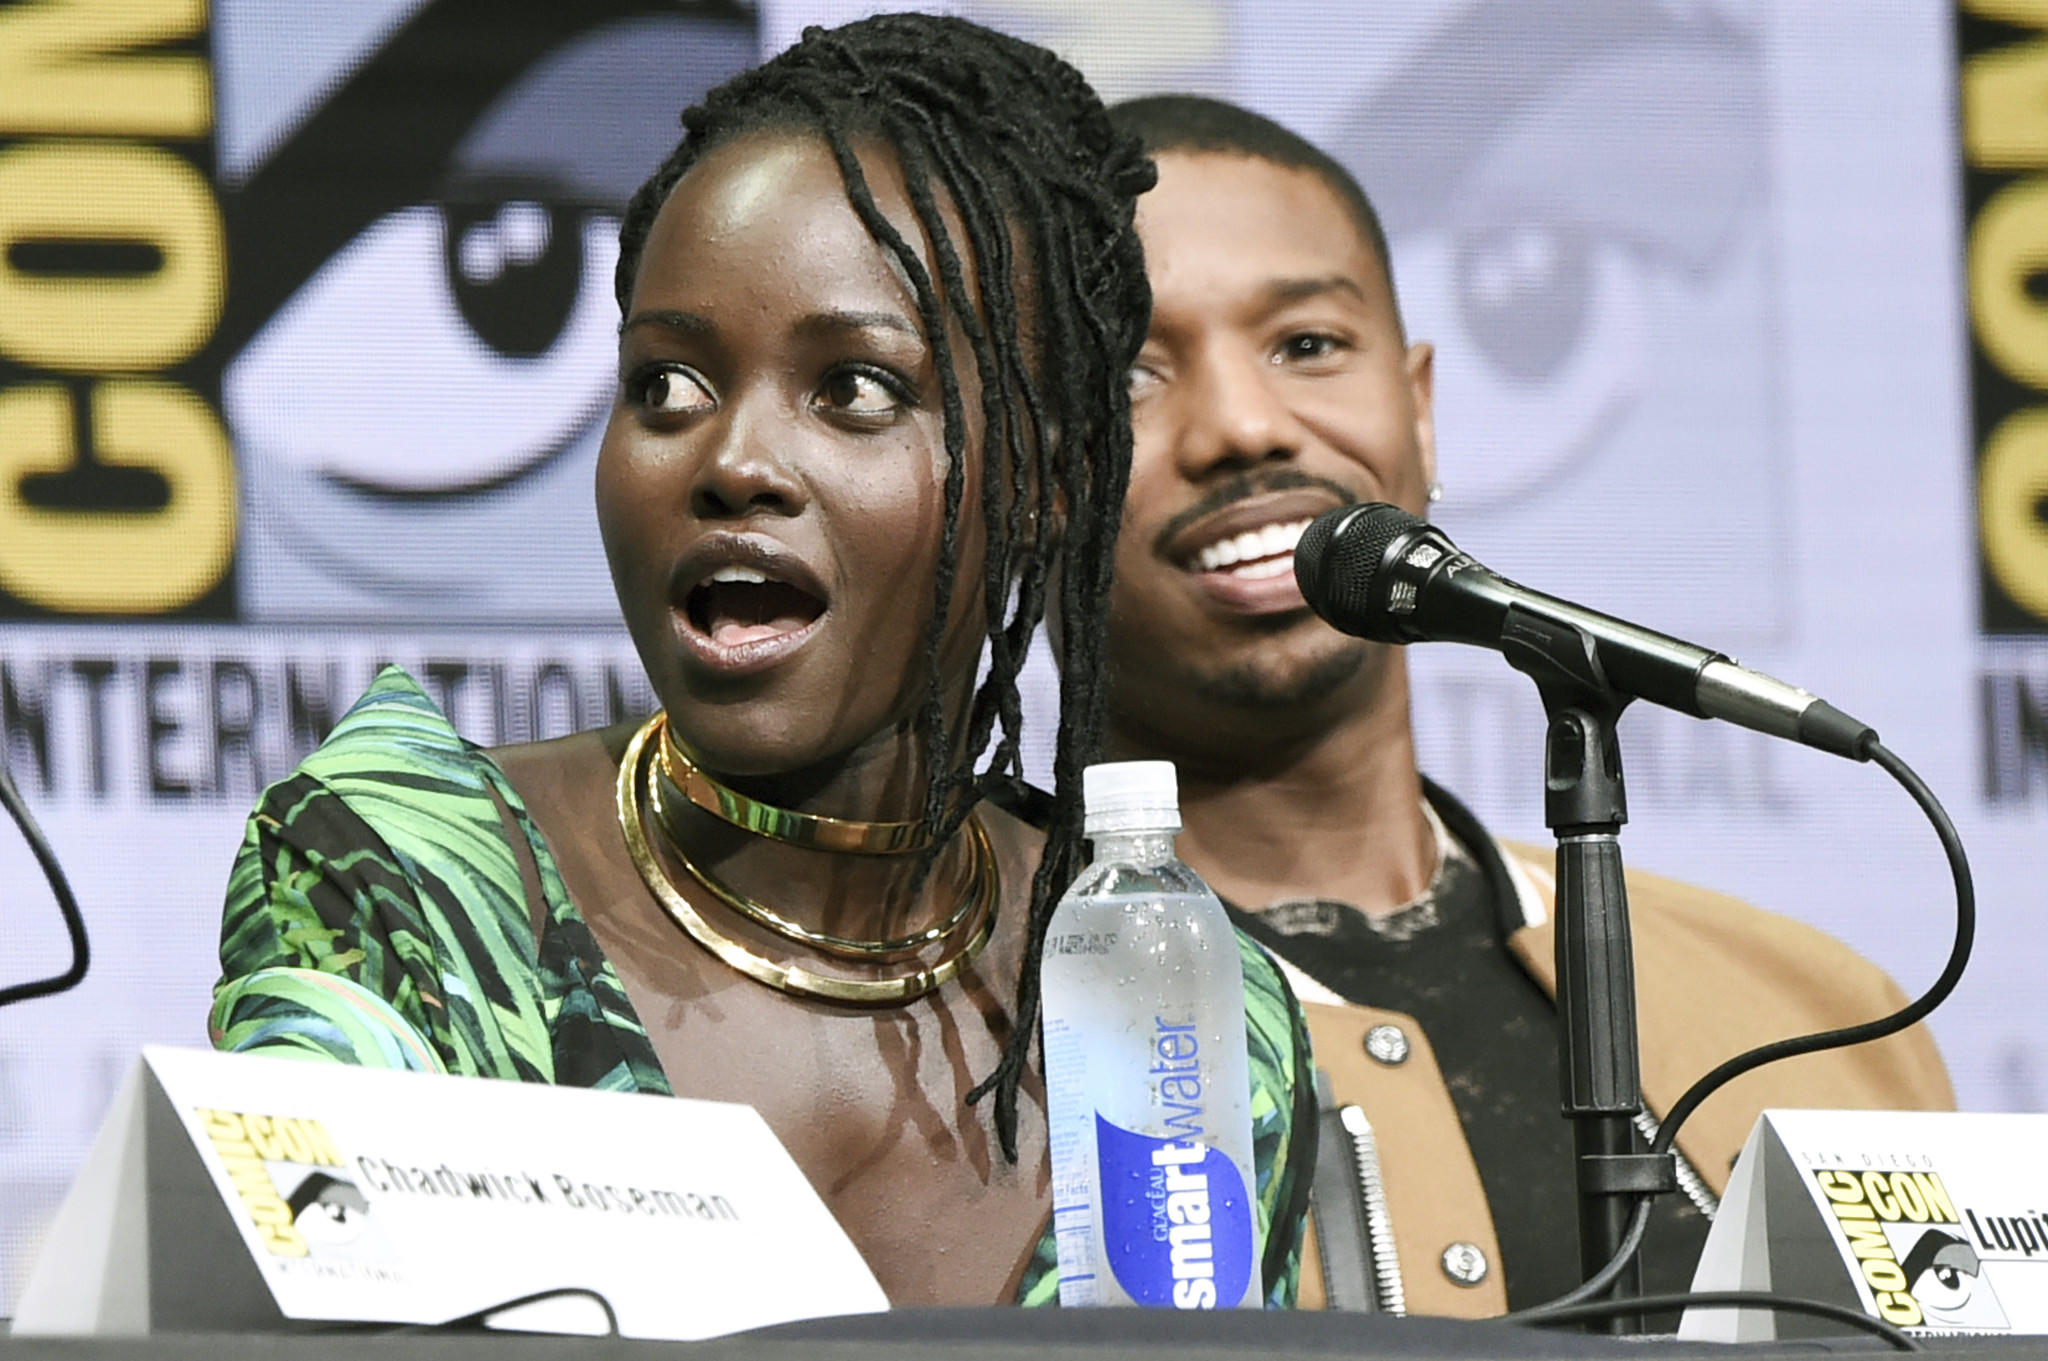 Lupita Nyong'o and Michael B. Jordan on the Marvel panel at San Diego Comic-Con on July 22, 2017. (Richard Shotwell / Invision/Associated Press)